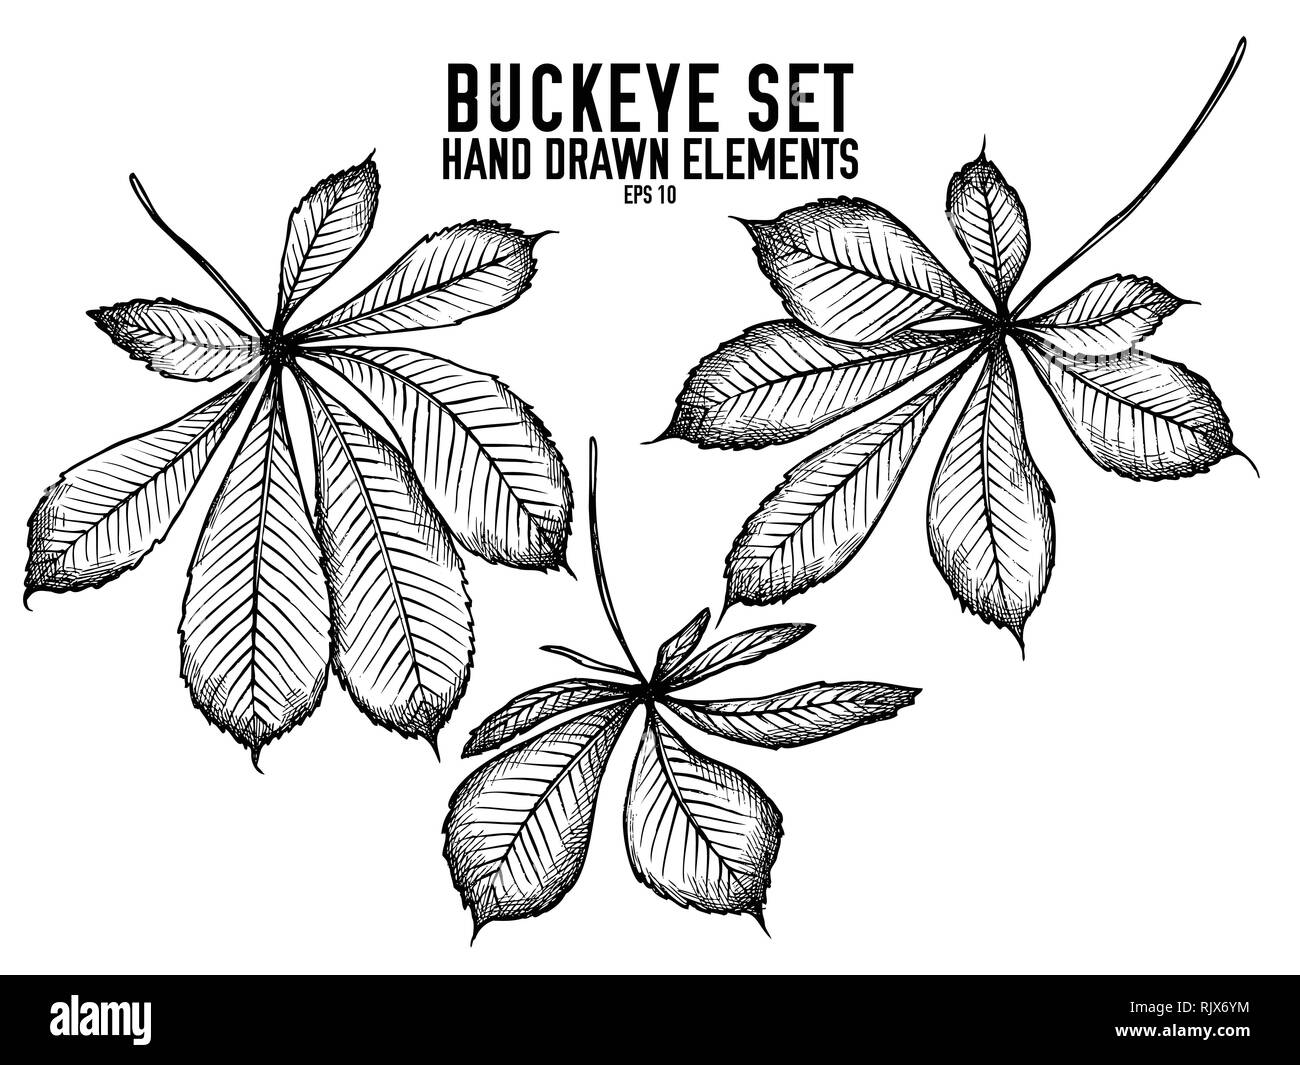 Vector collection of hand drawn black and white buckeye - Stock Image